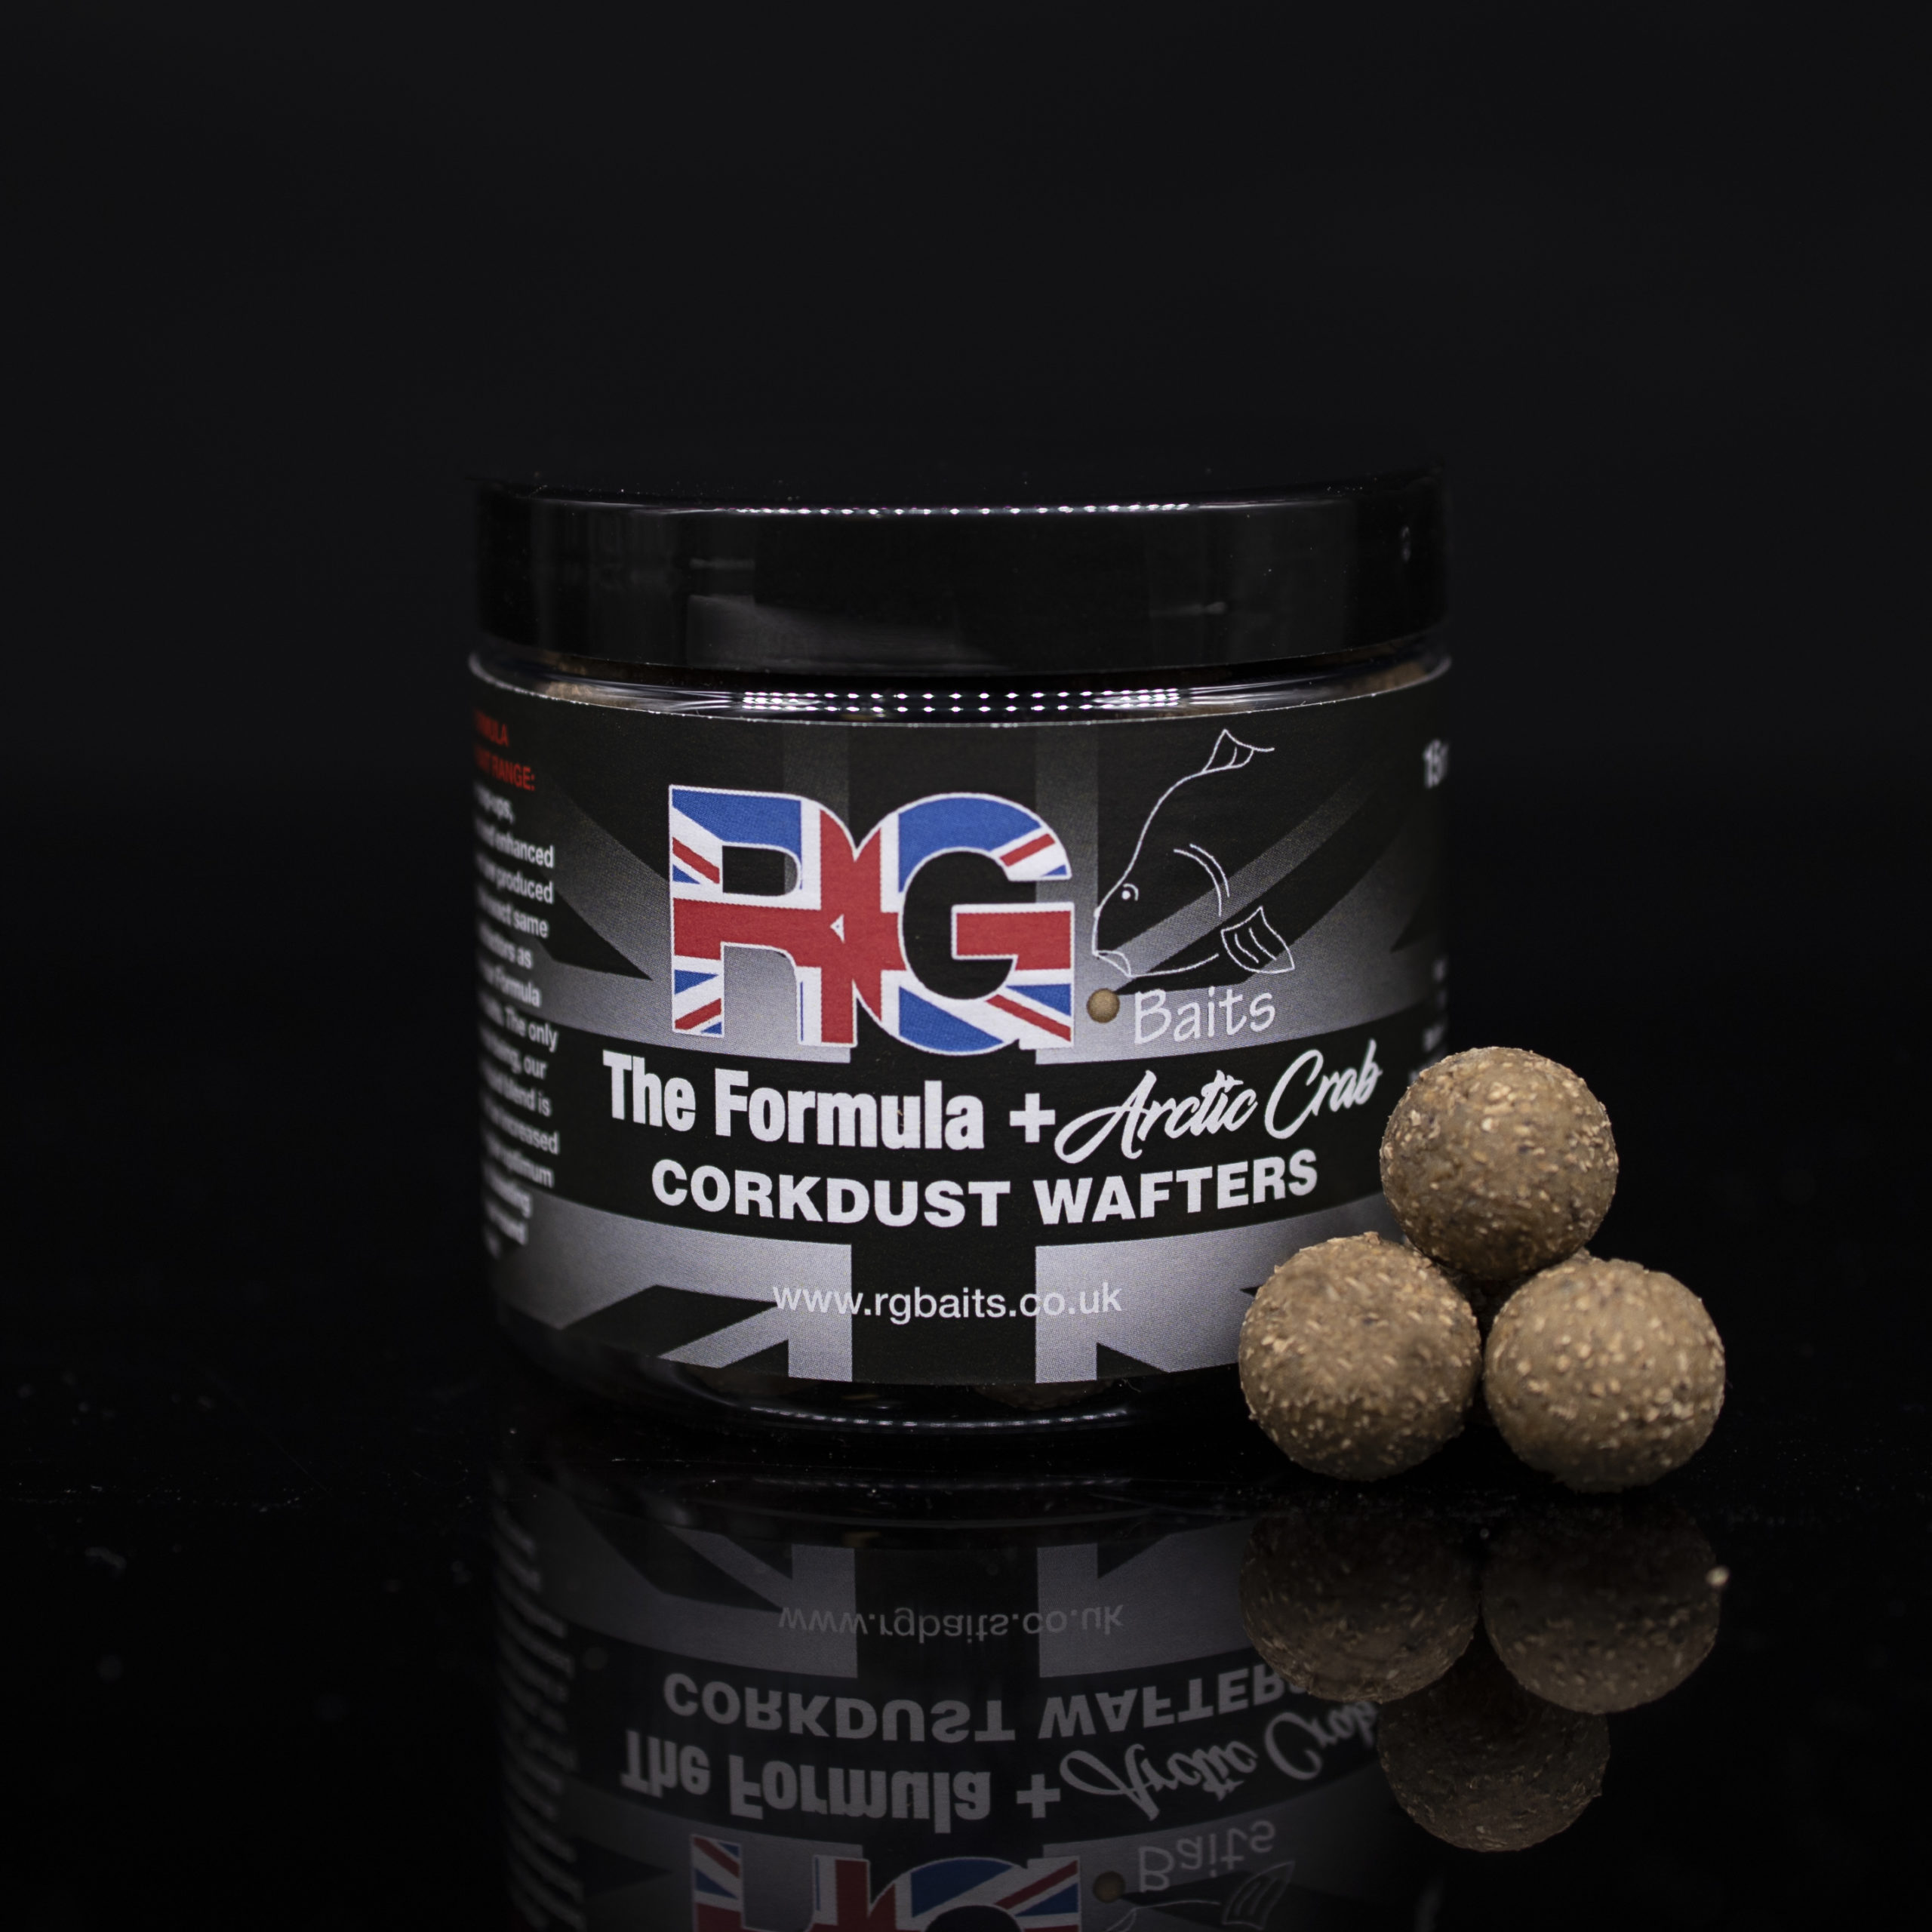 The Formula + Arctic Crab Corkdust Wafters